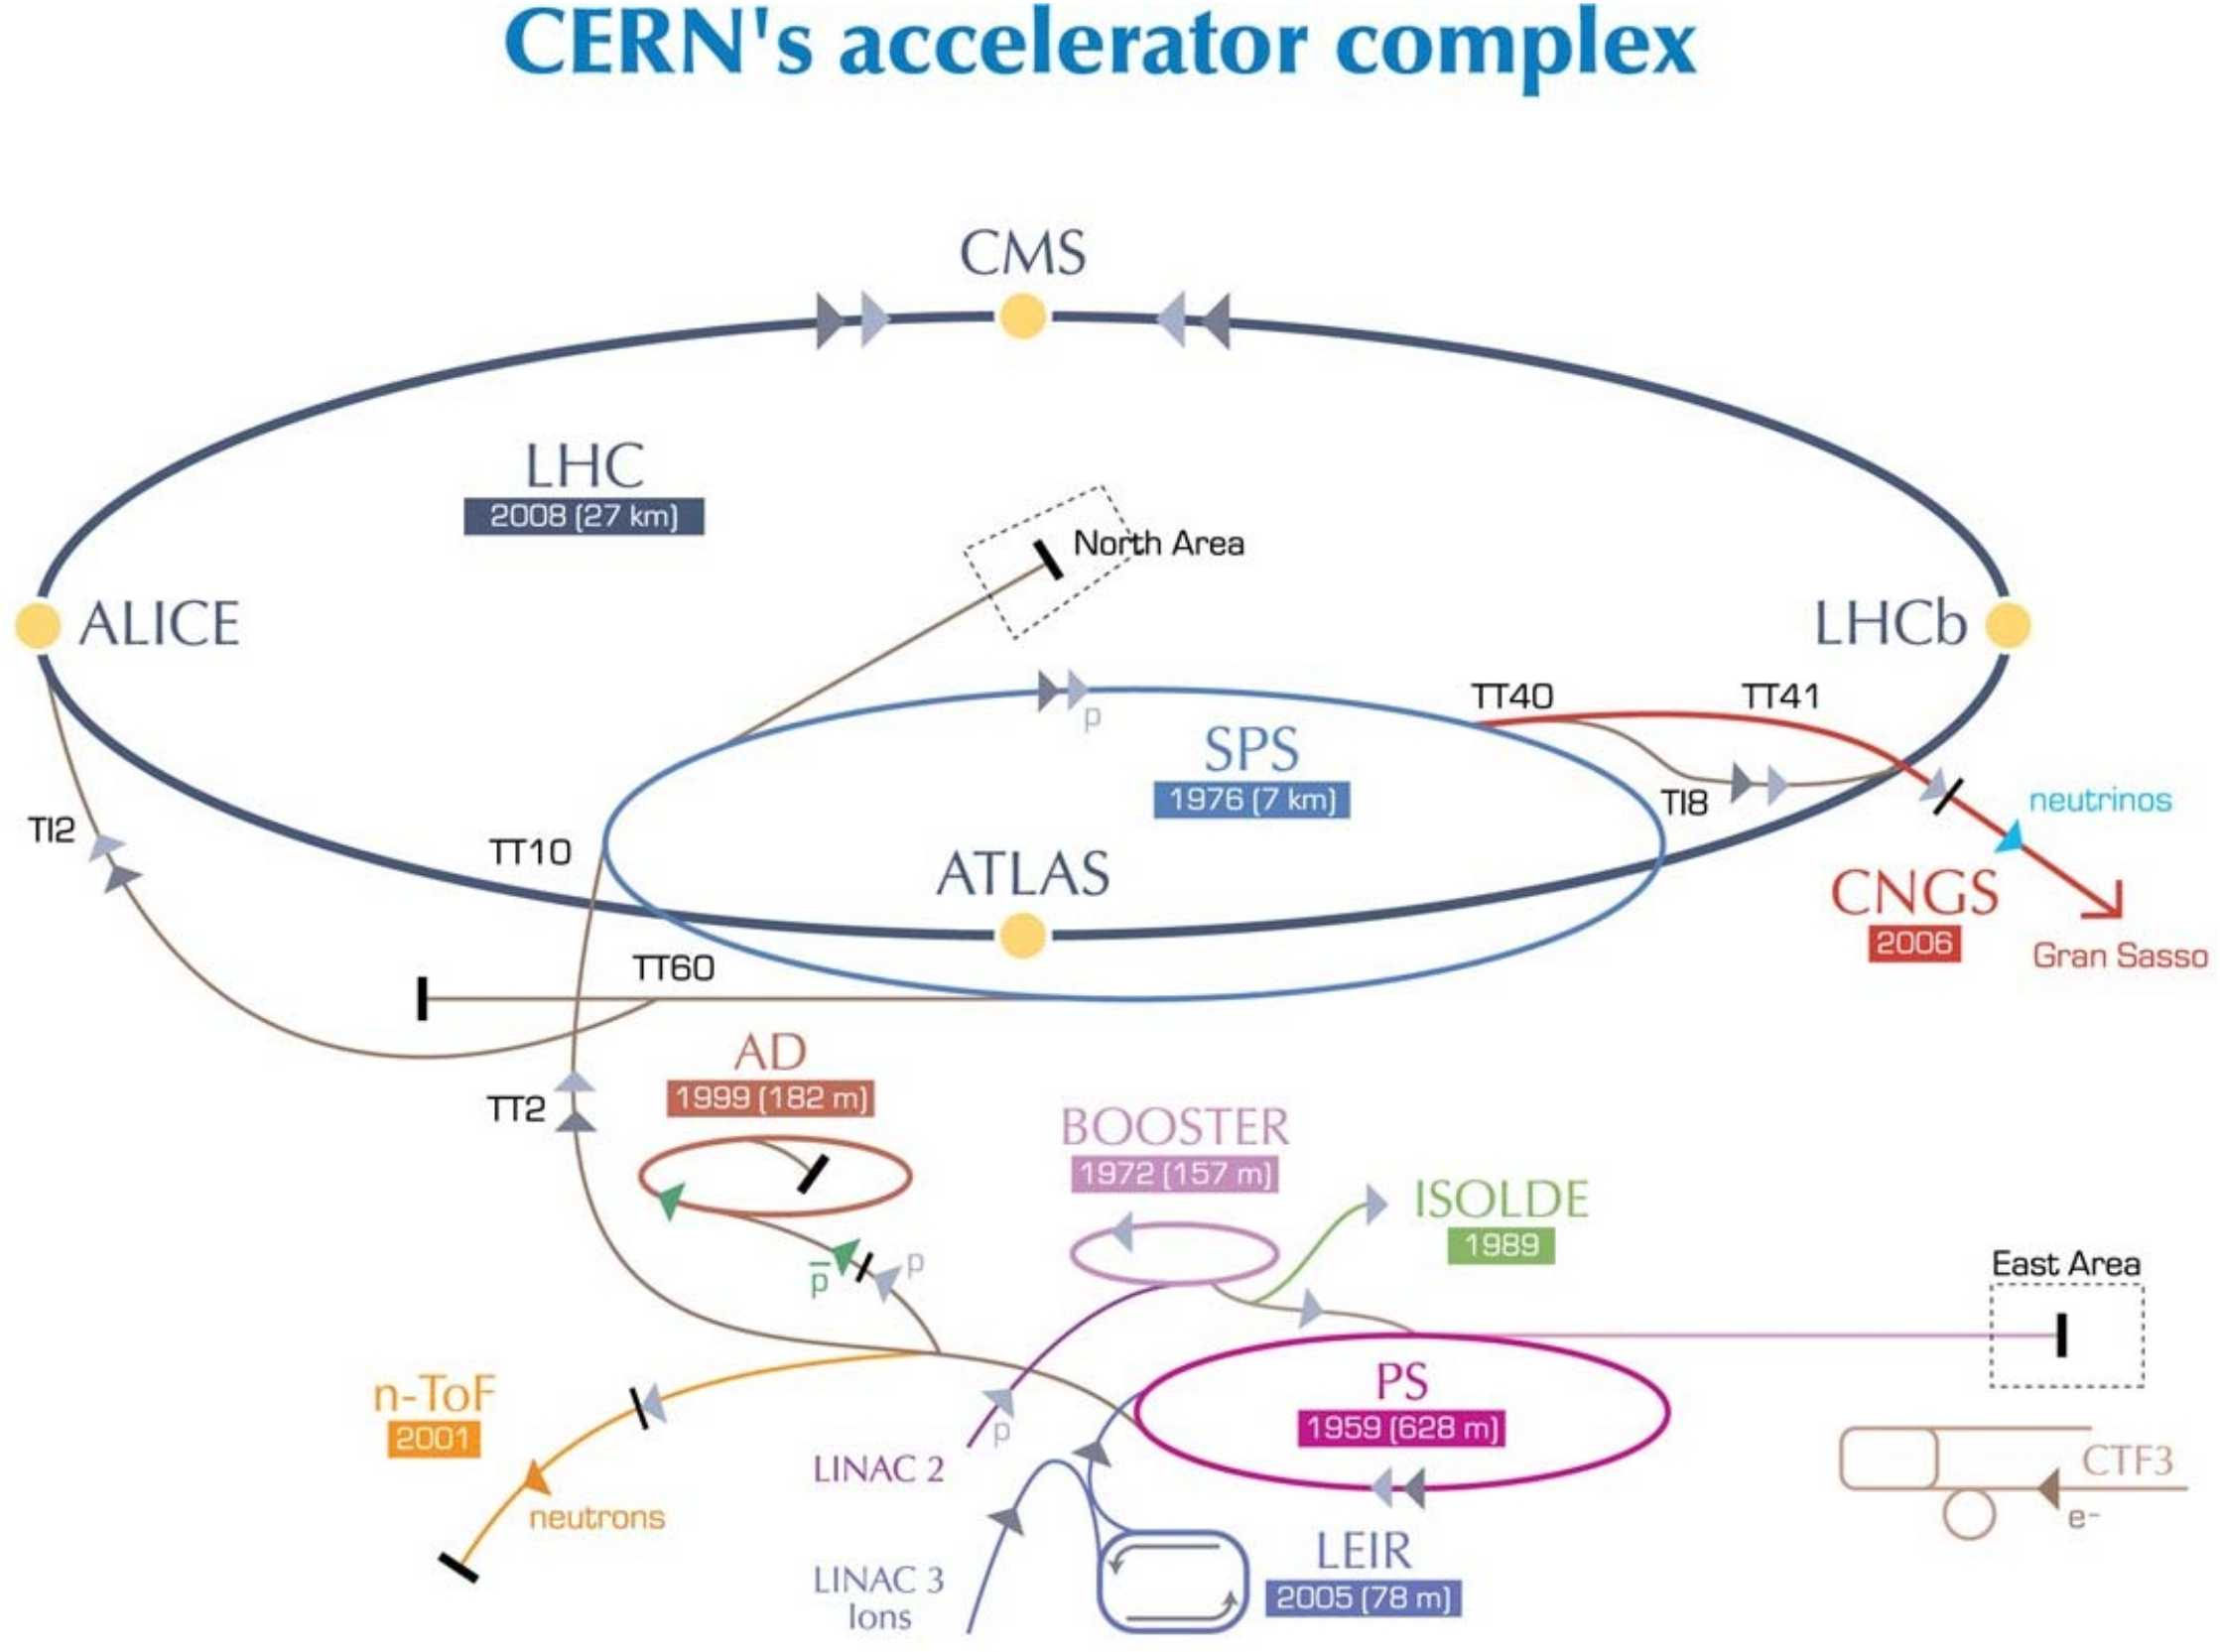 figures/applications/CERN/accelerators-stripped.jpg